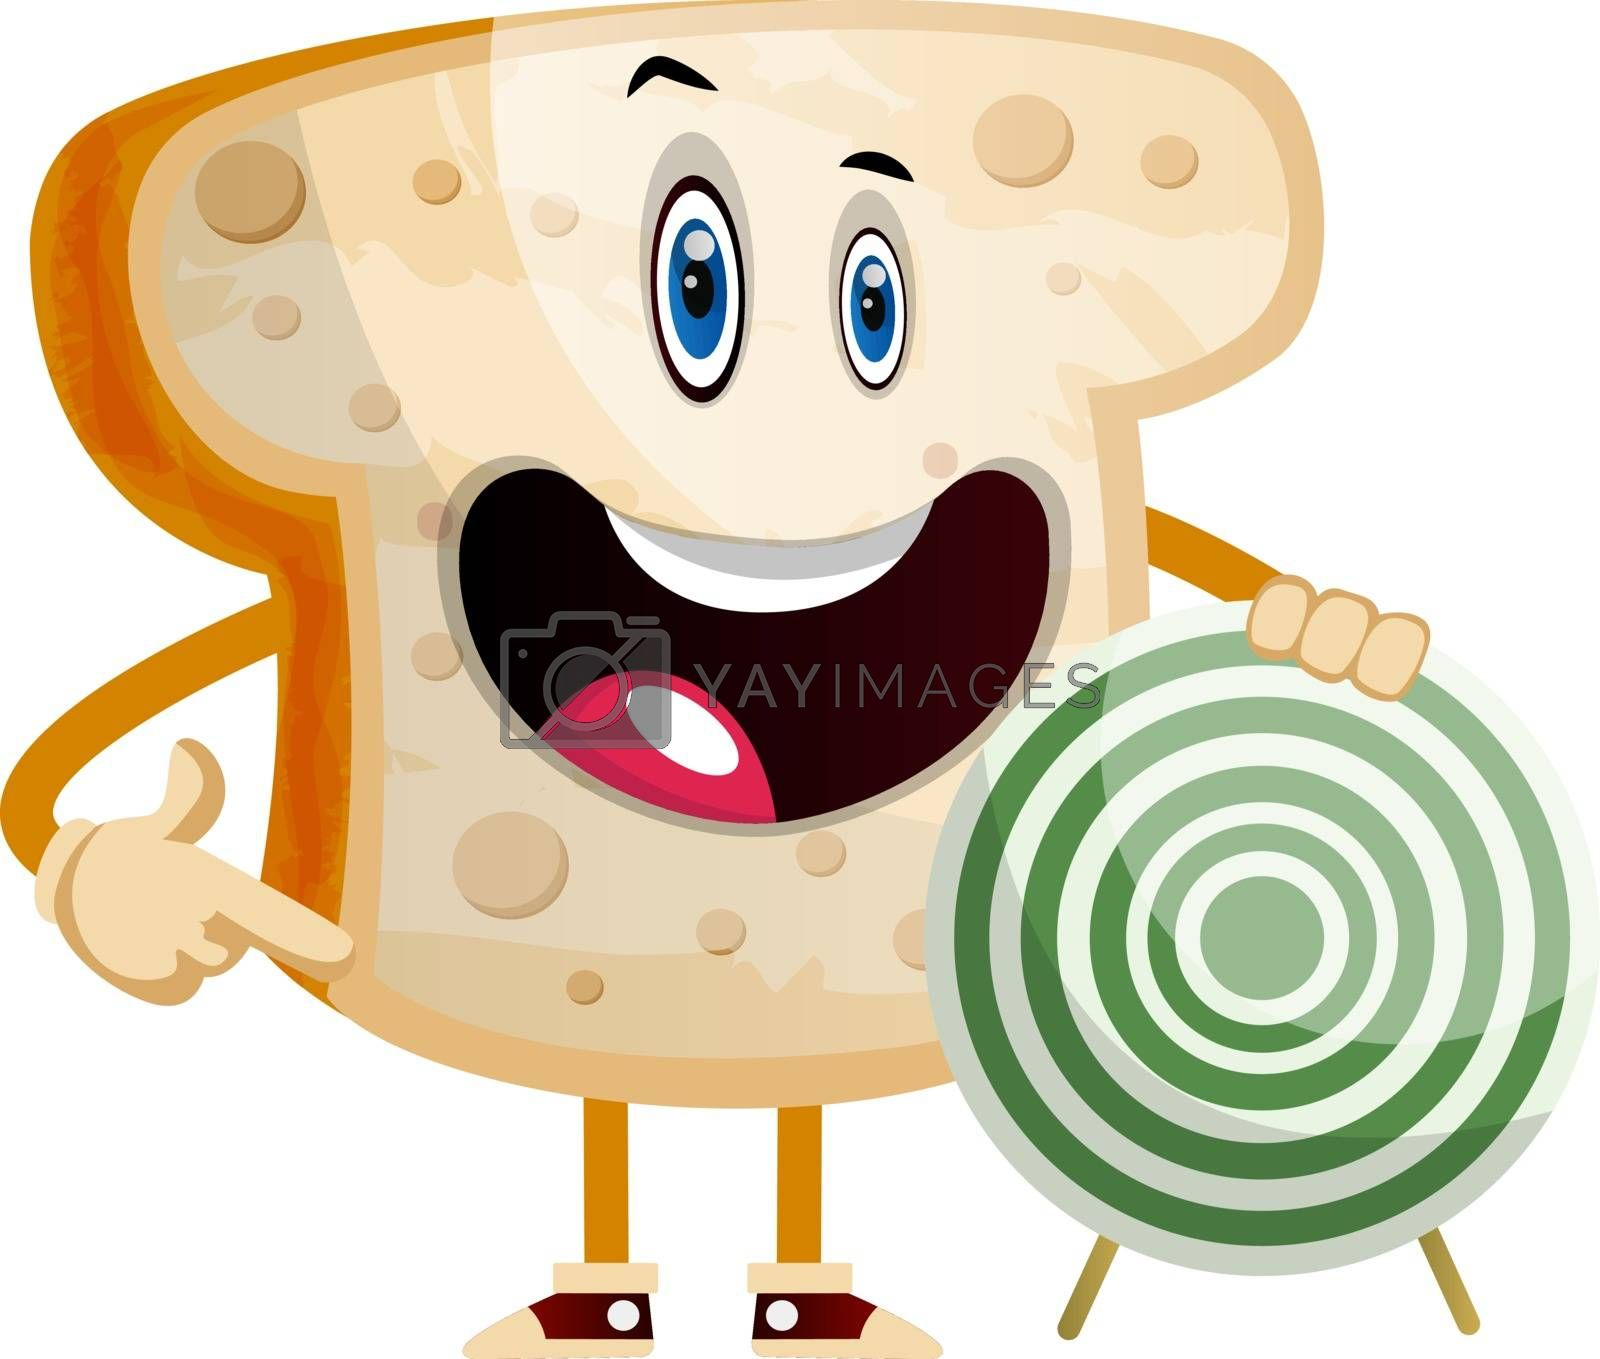 Royalty free image of Target Bread illustration vector on white background by Morphart